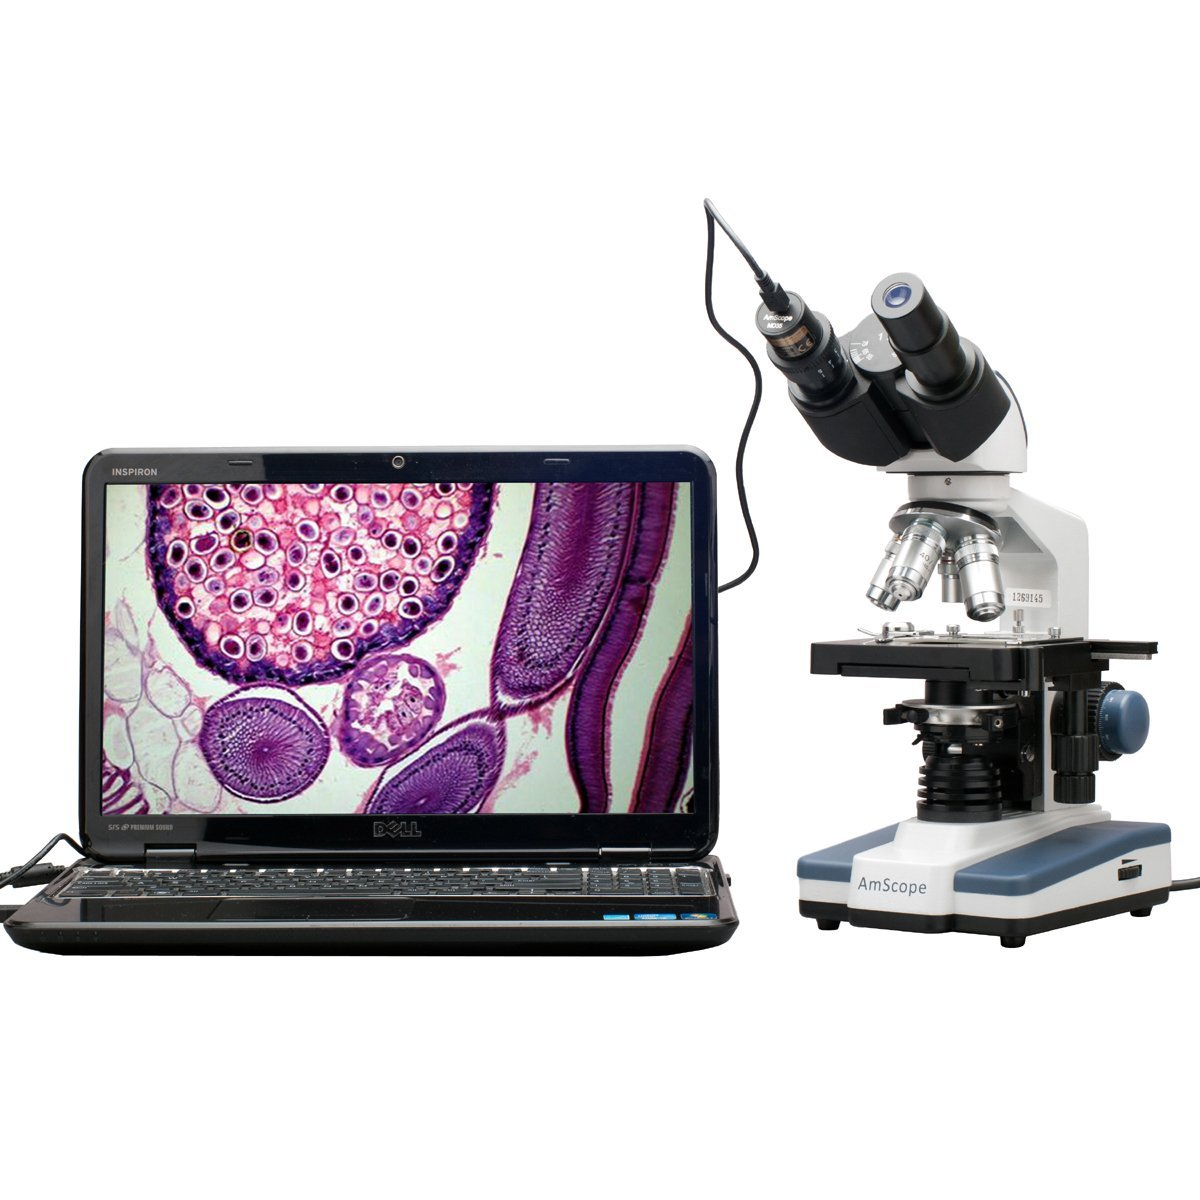 Amscope 40X-2500X LED Digital Binocular Microscope is a compound microscope with 3D Stage and 5MP Digital Camera